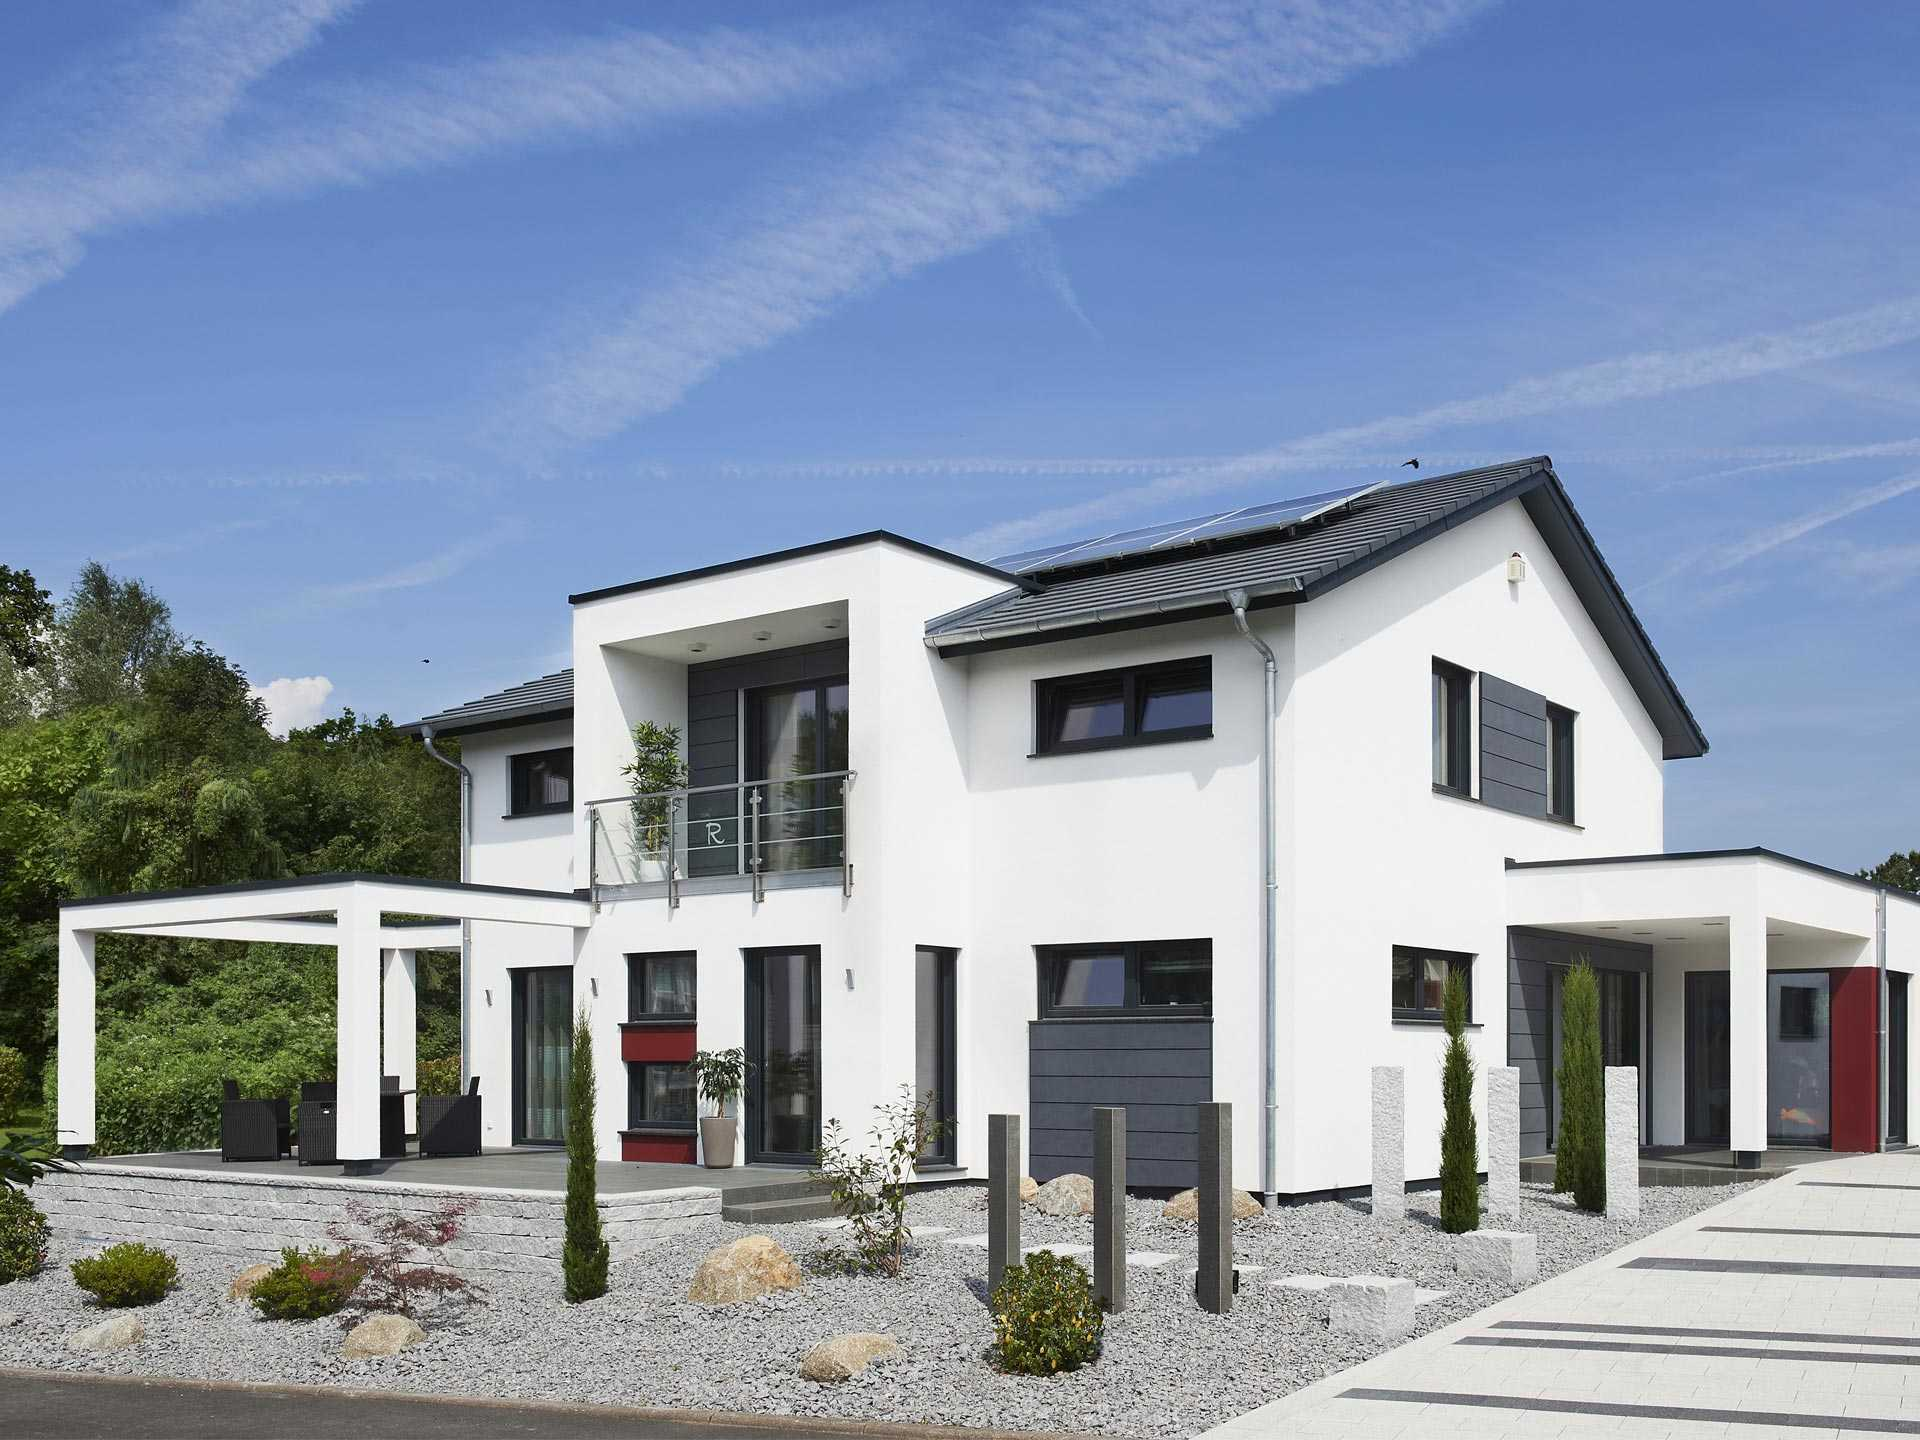 Musterhaus innovation r bad vilbel rensch haus for Musterhaus modern